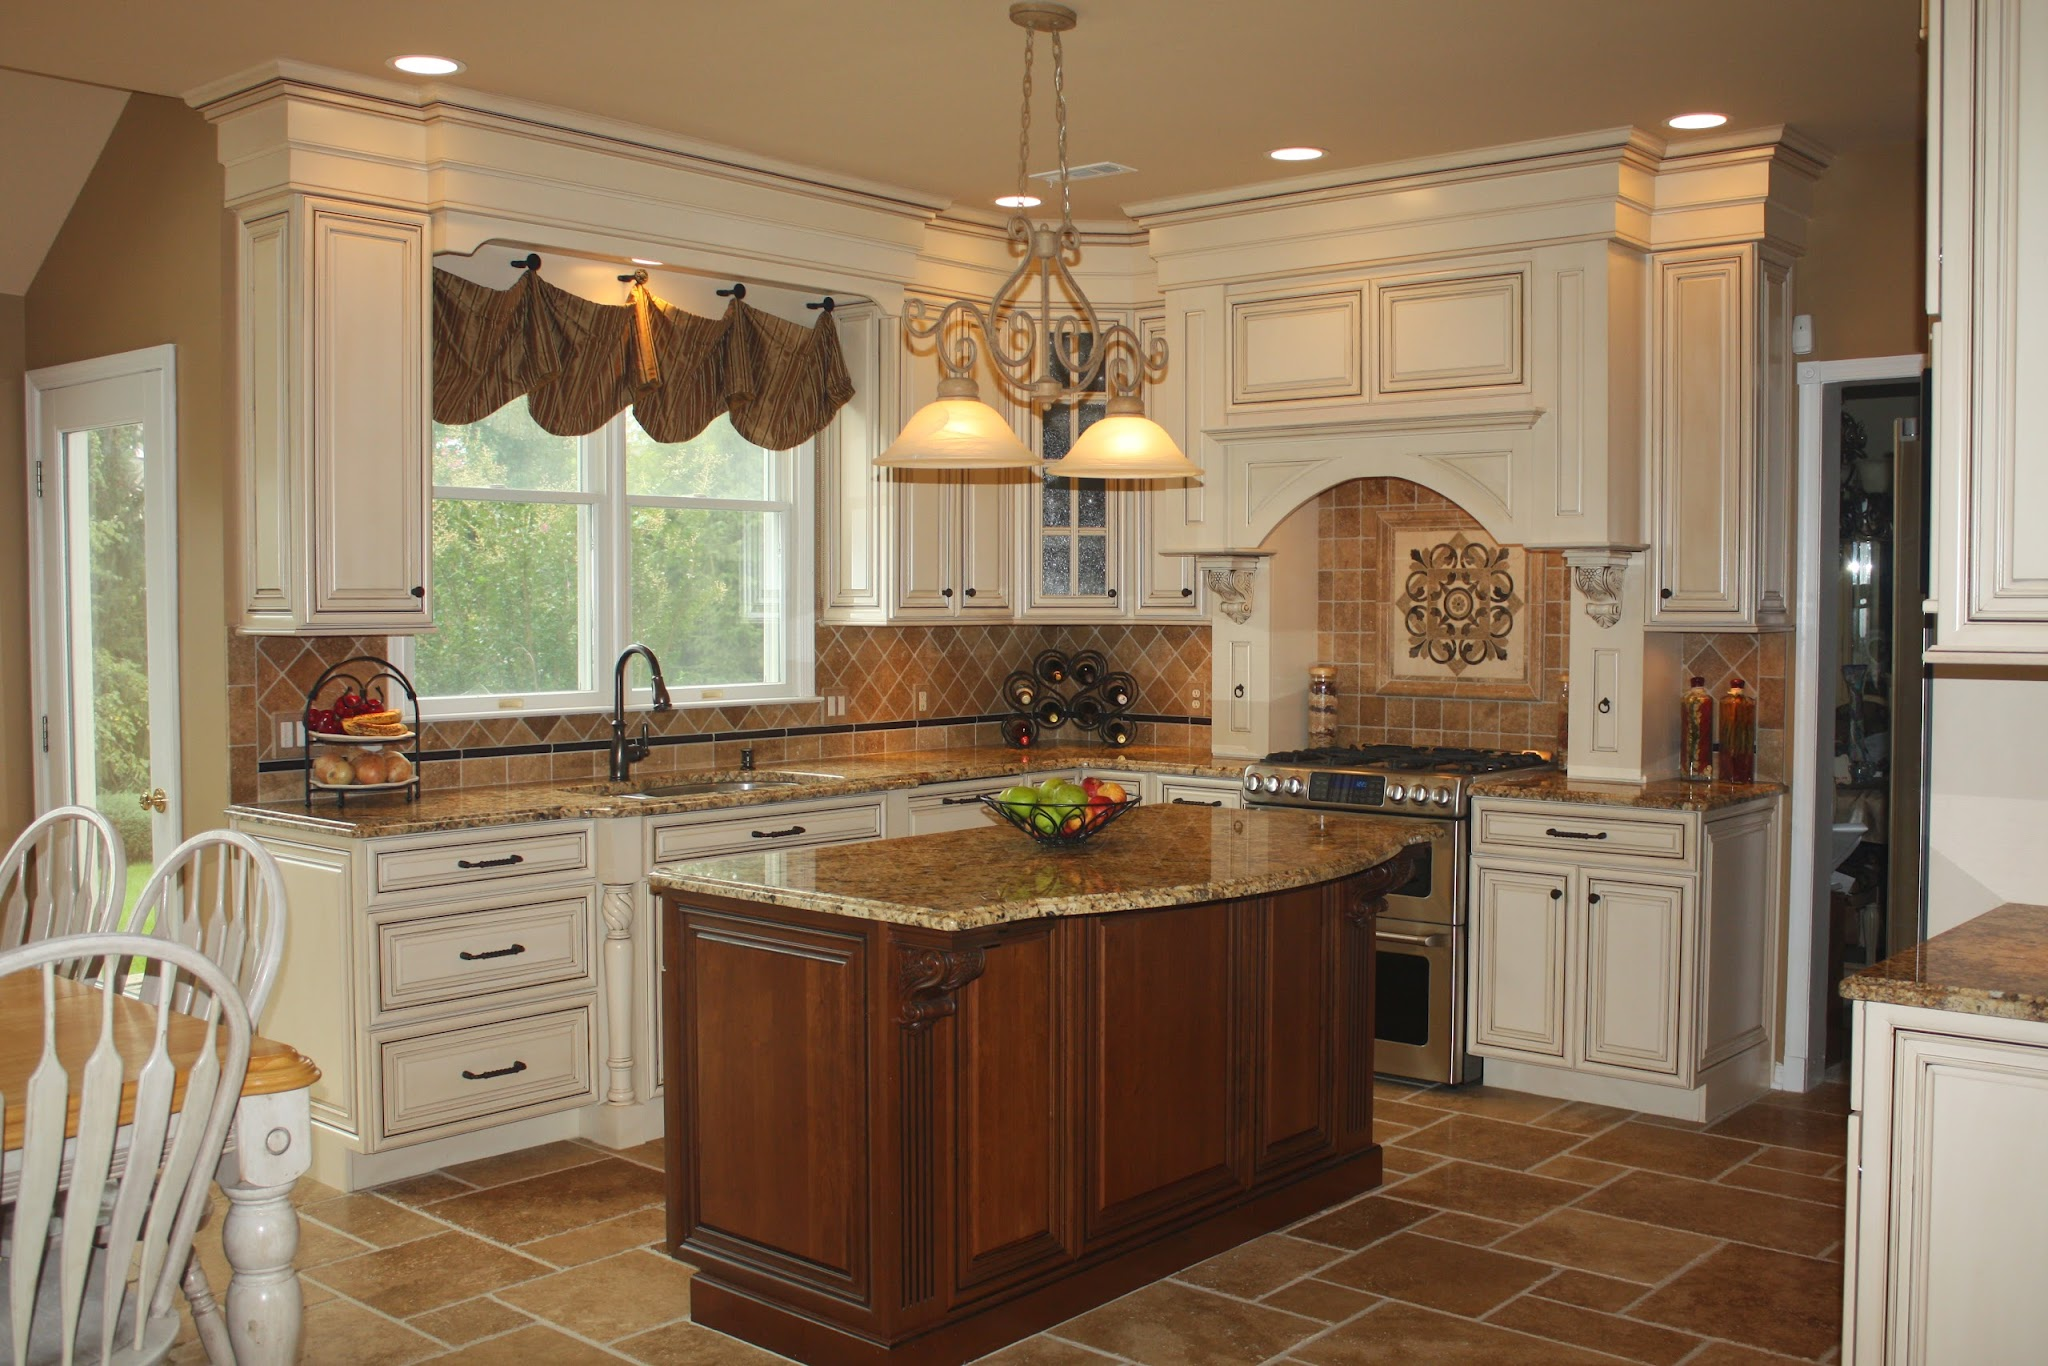 Houzz kitchen dreams house furniture for Kitchen cabinets houzz